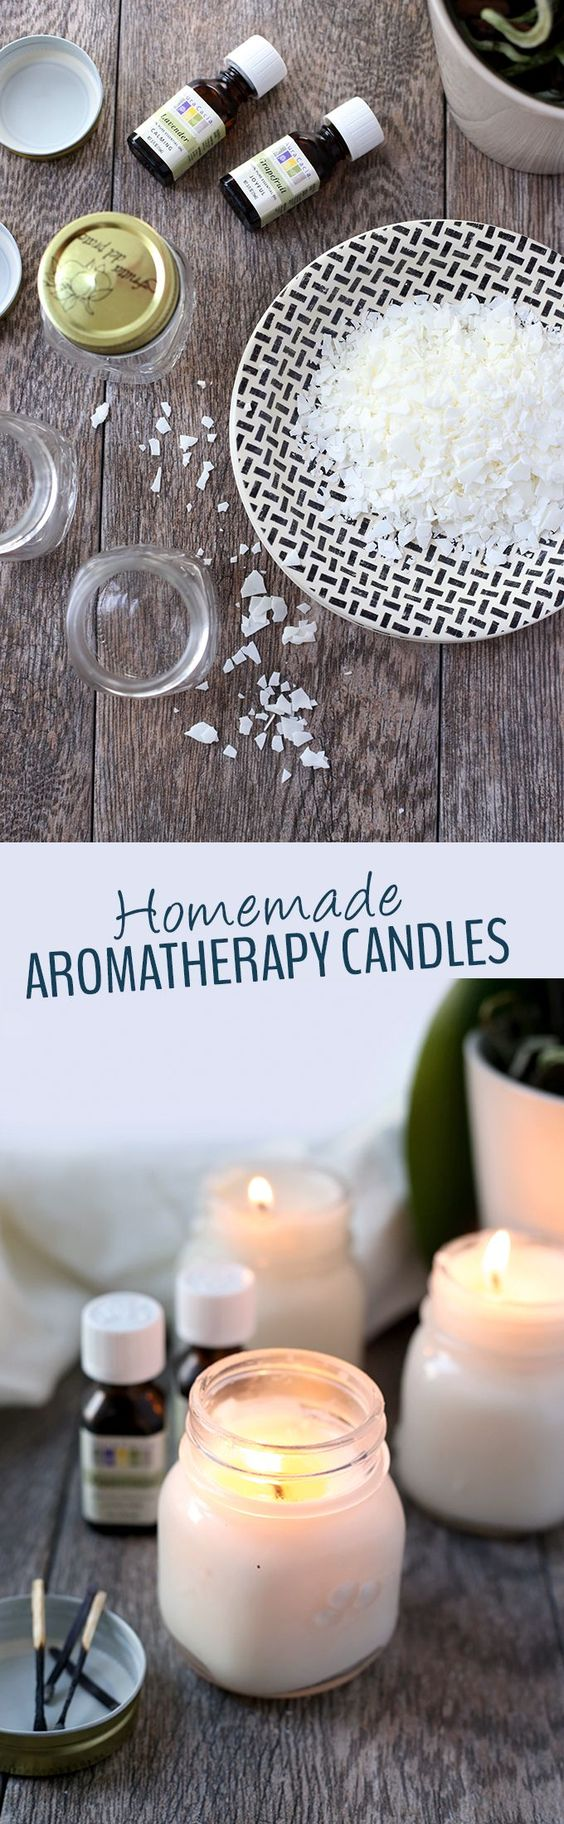 homemade-candles via